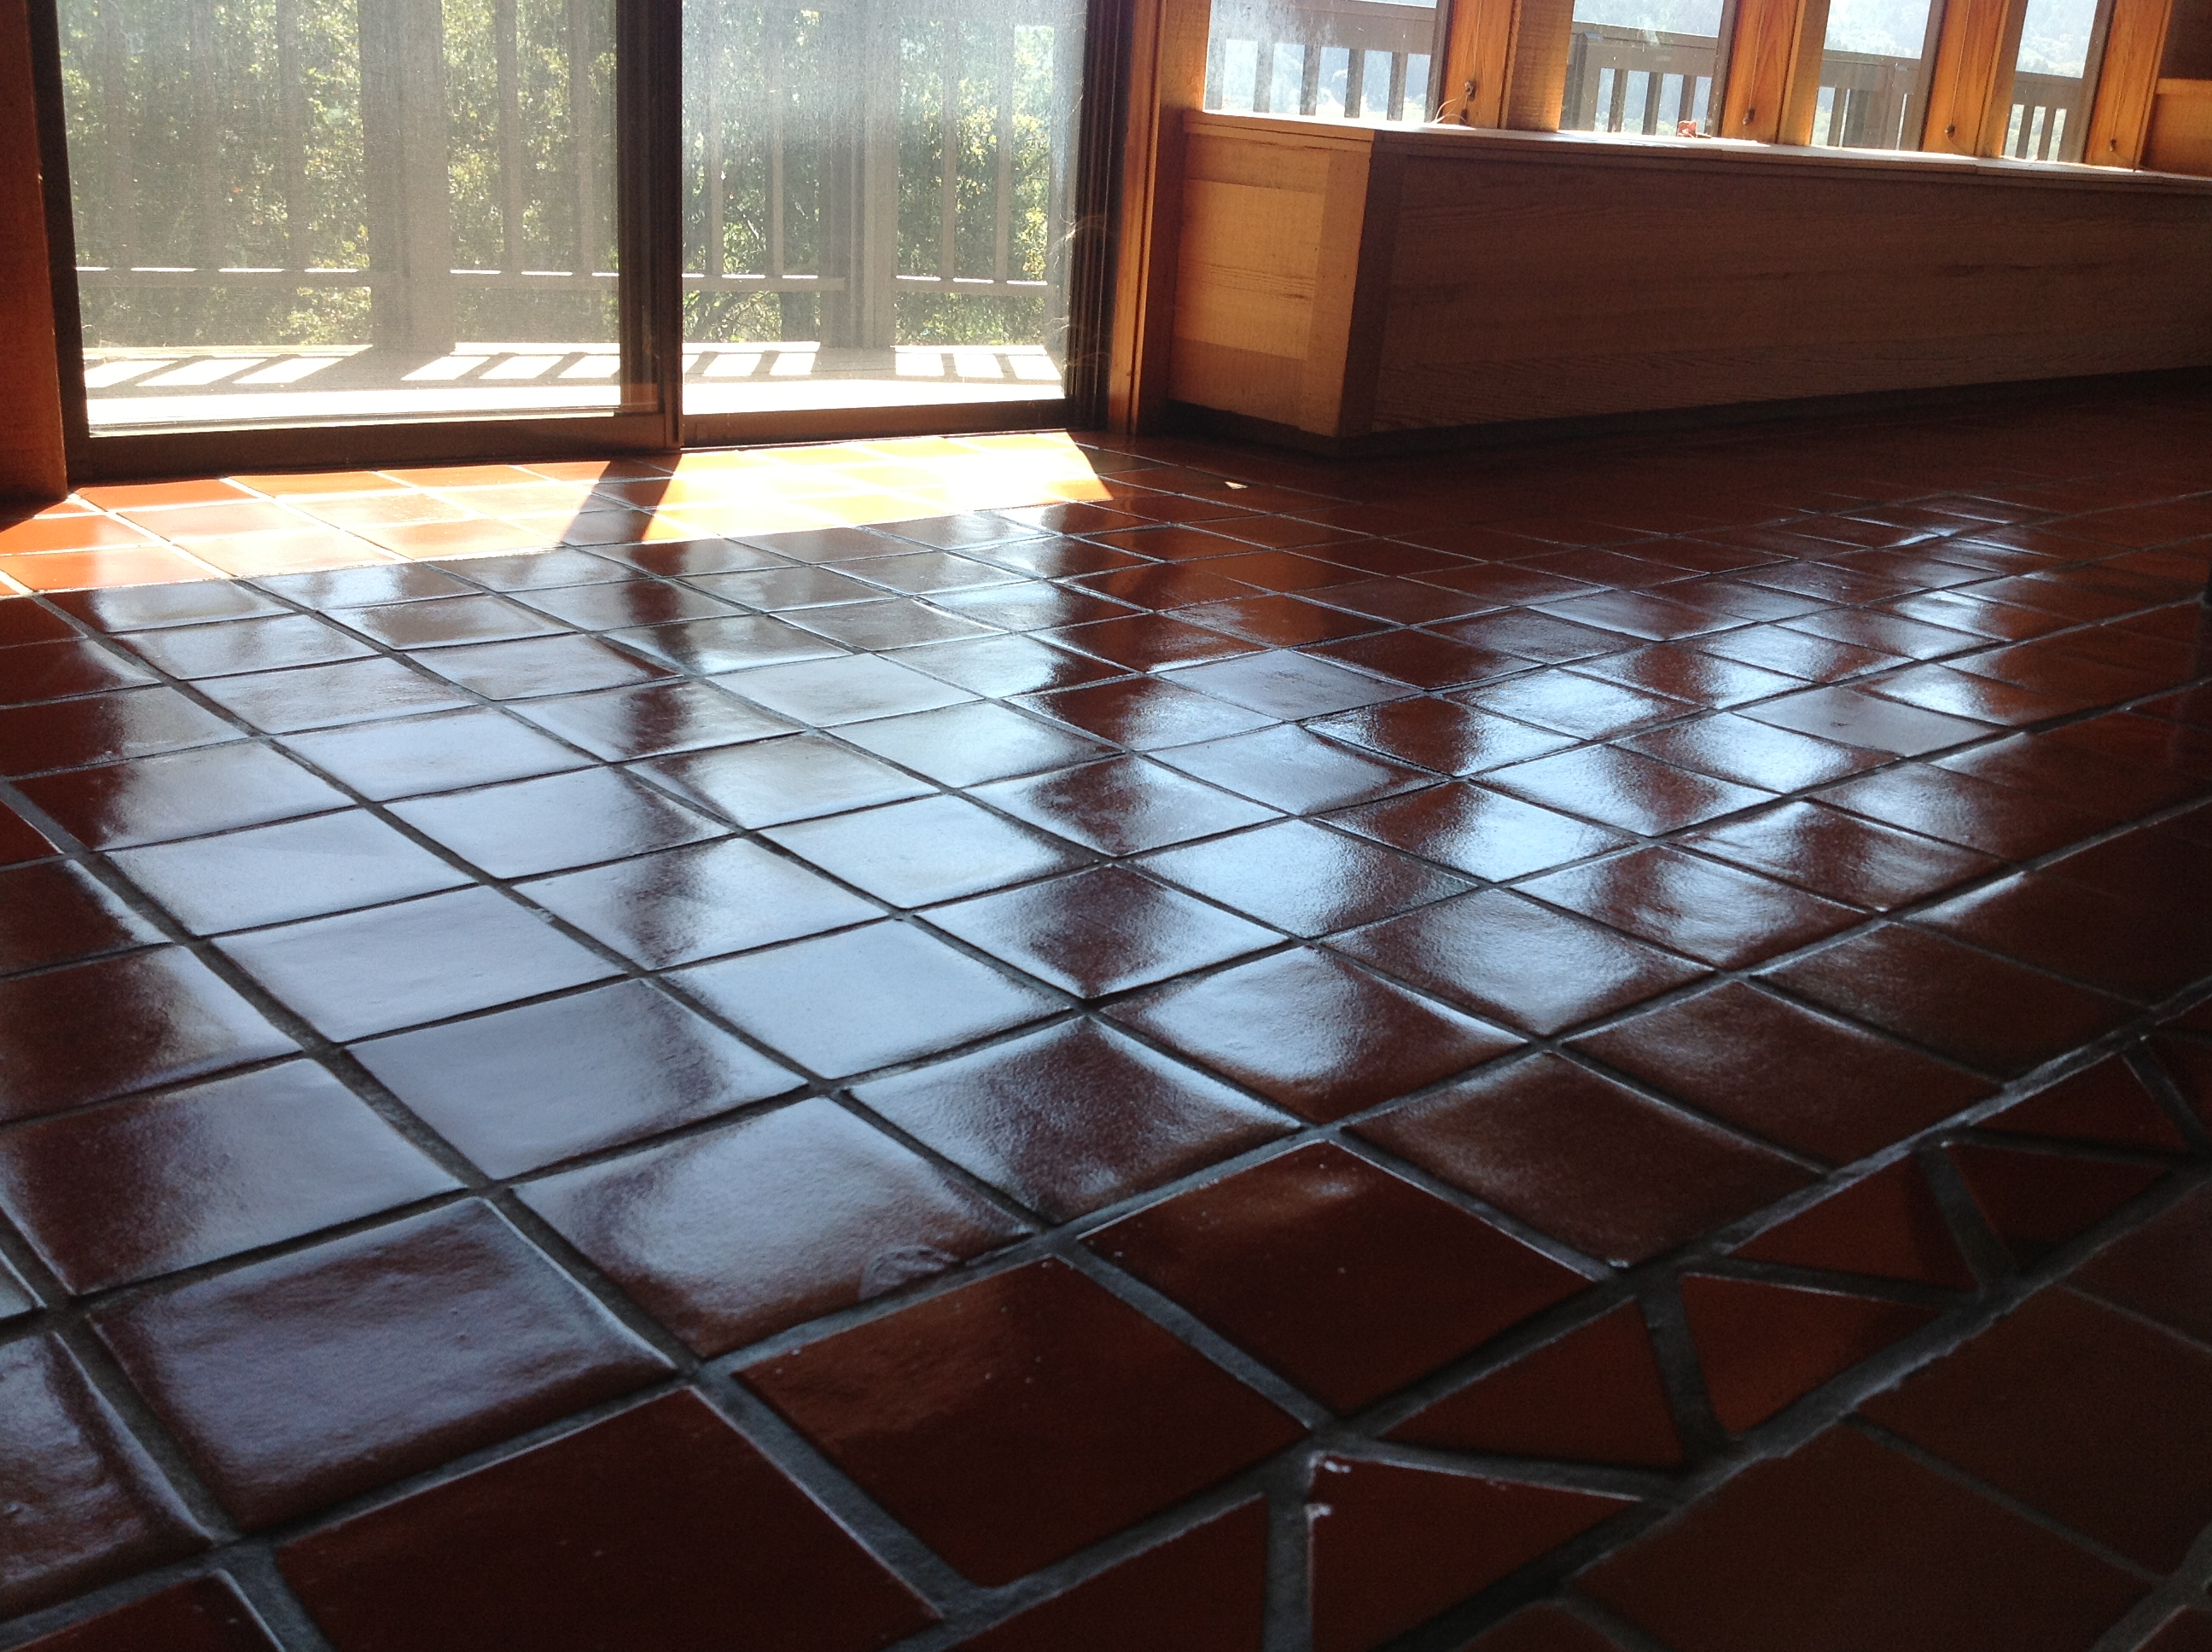 Seal Tile Floor >> Mexican Paver Replacement & Repair | California Tile ...